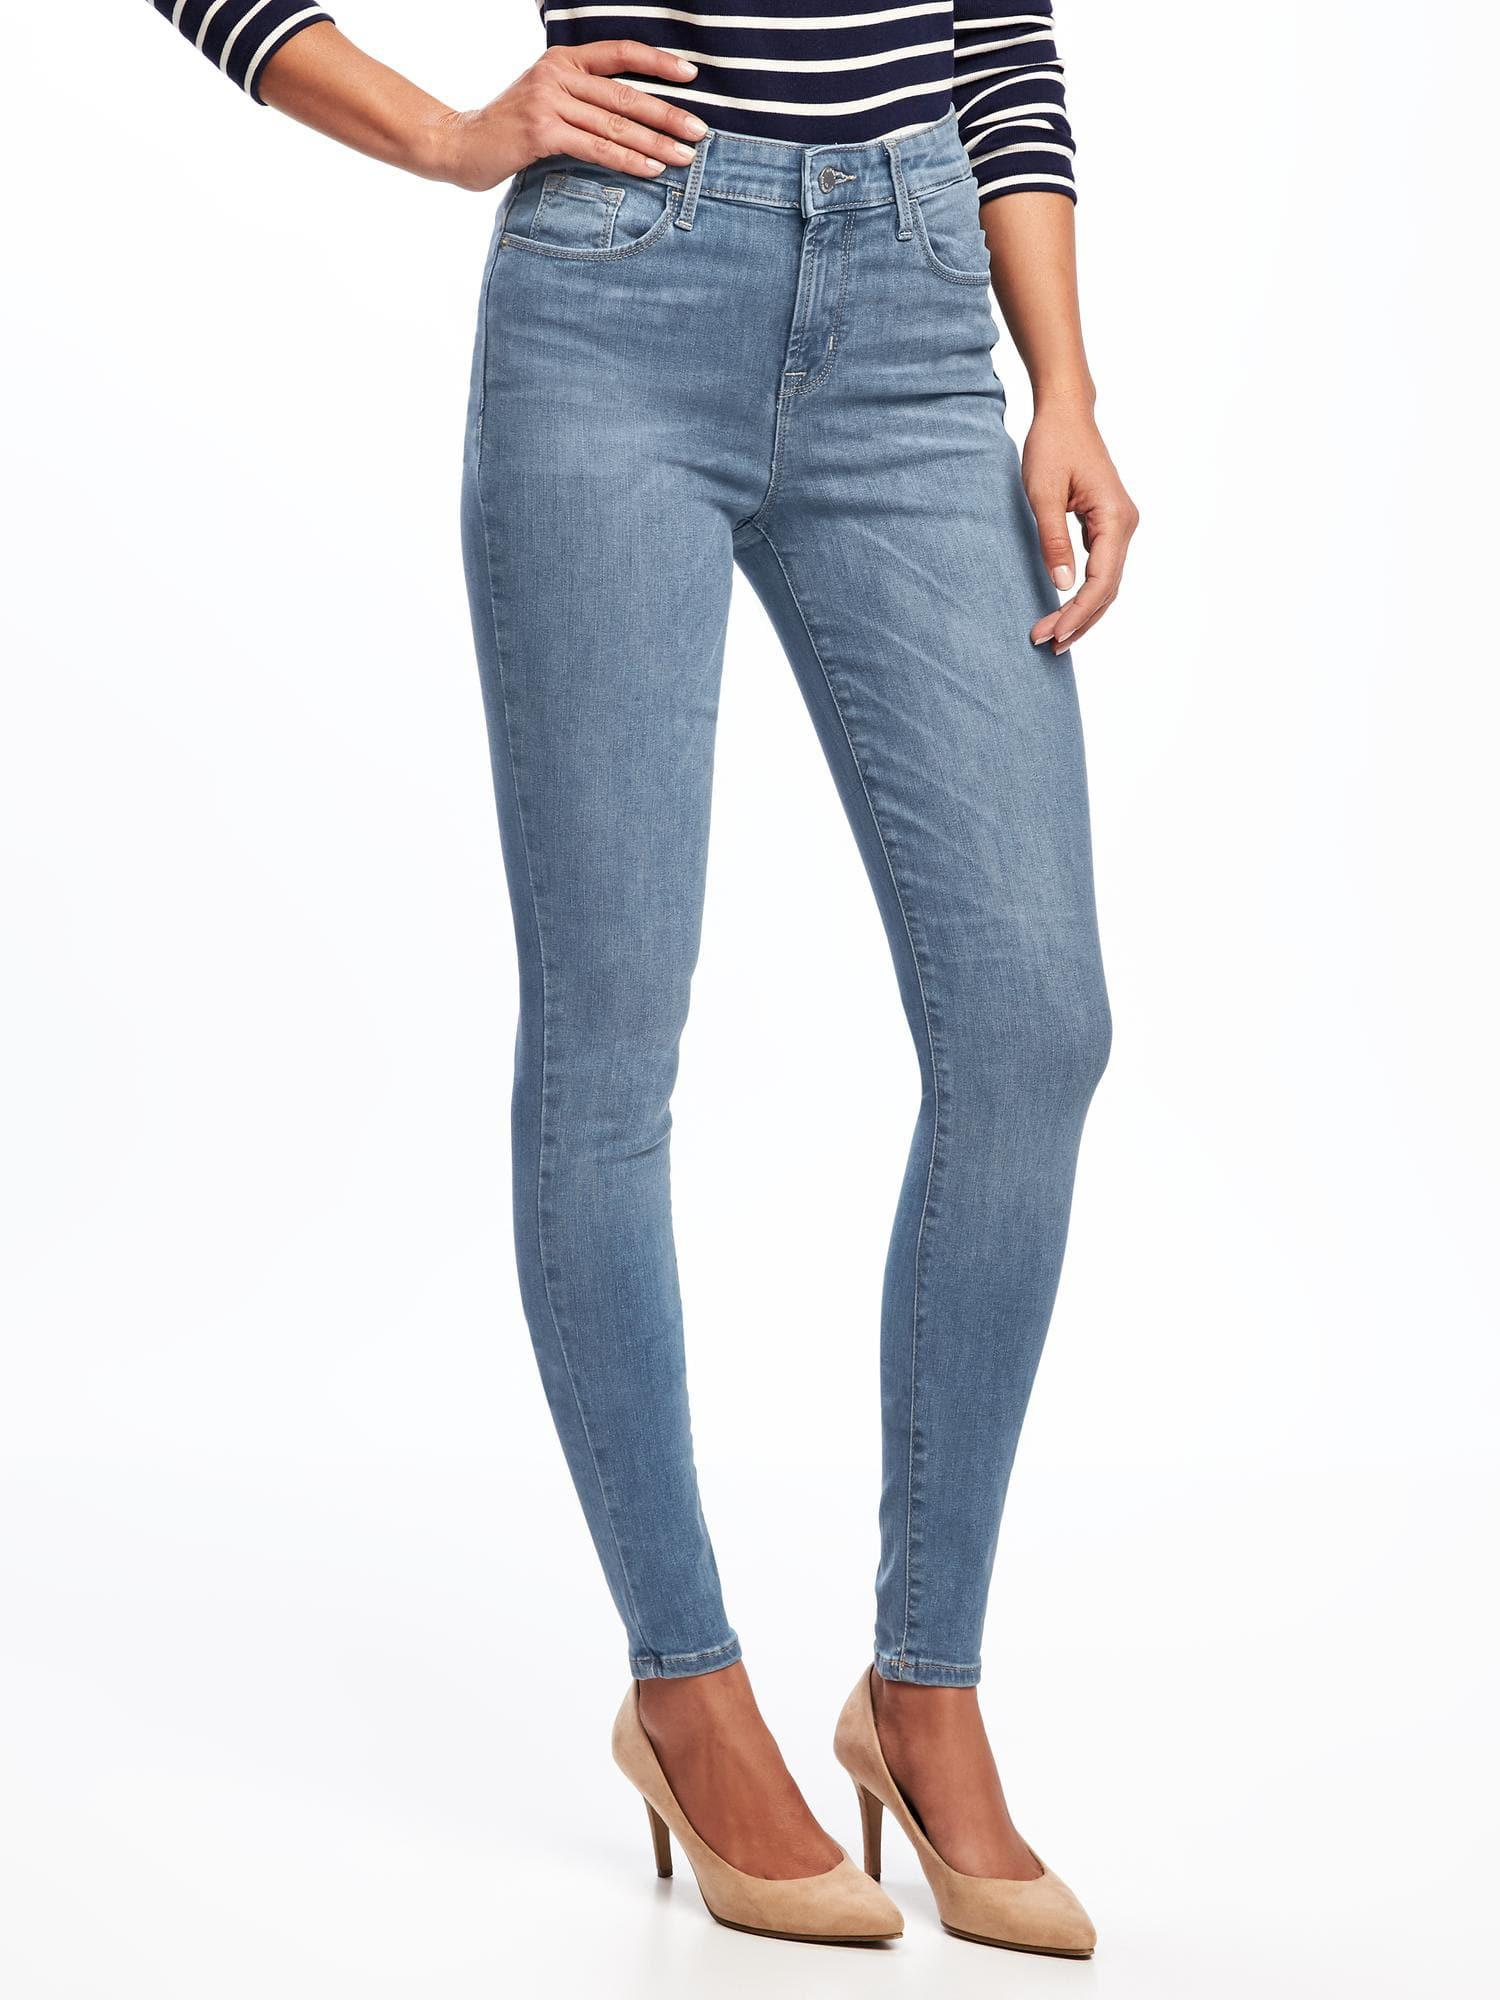 08ec2fd64cd Lyst - Old Navy High-rise Rockstar Built-in Sculpt Skinny Jeans in Blue